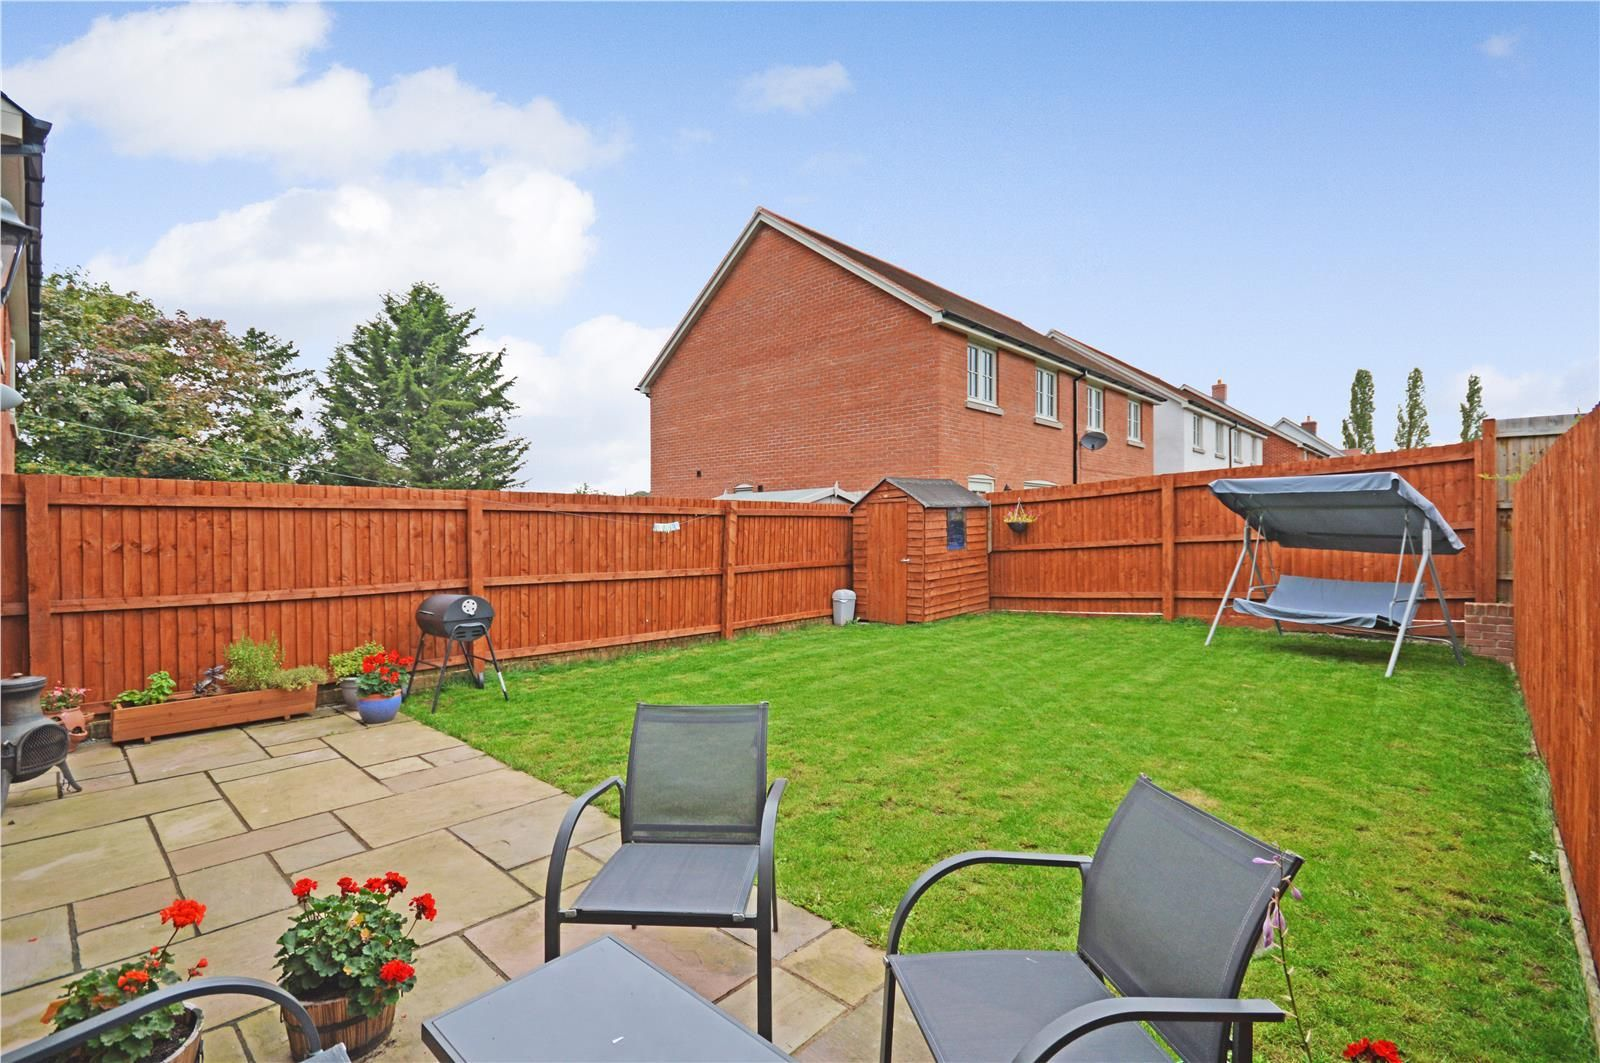 3 bed semi-detached for sale in Bodenham  - Property Image 6